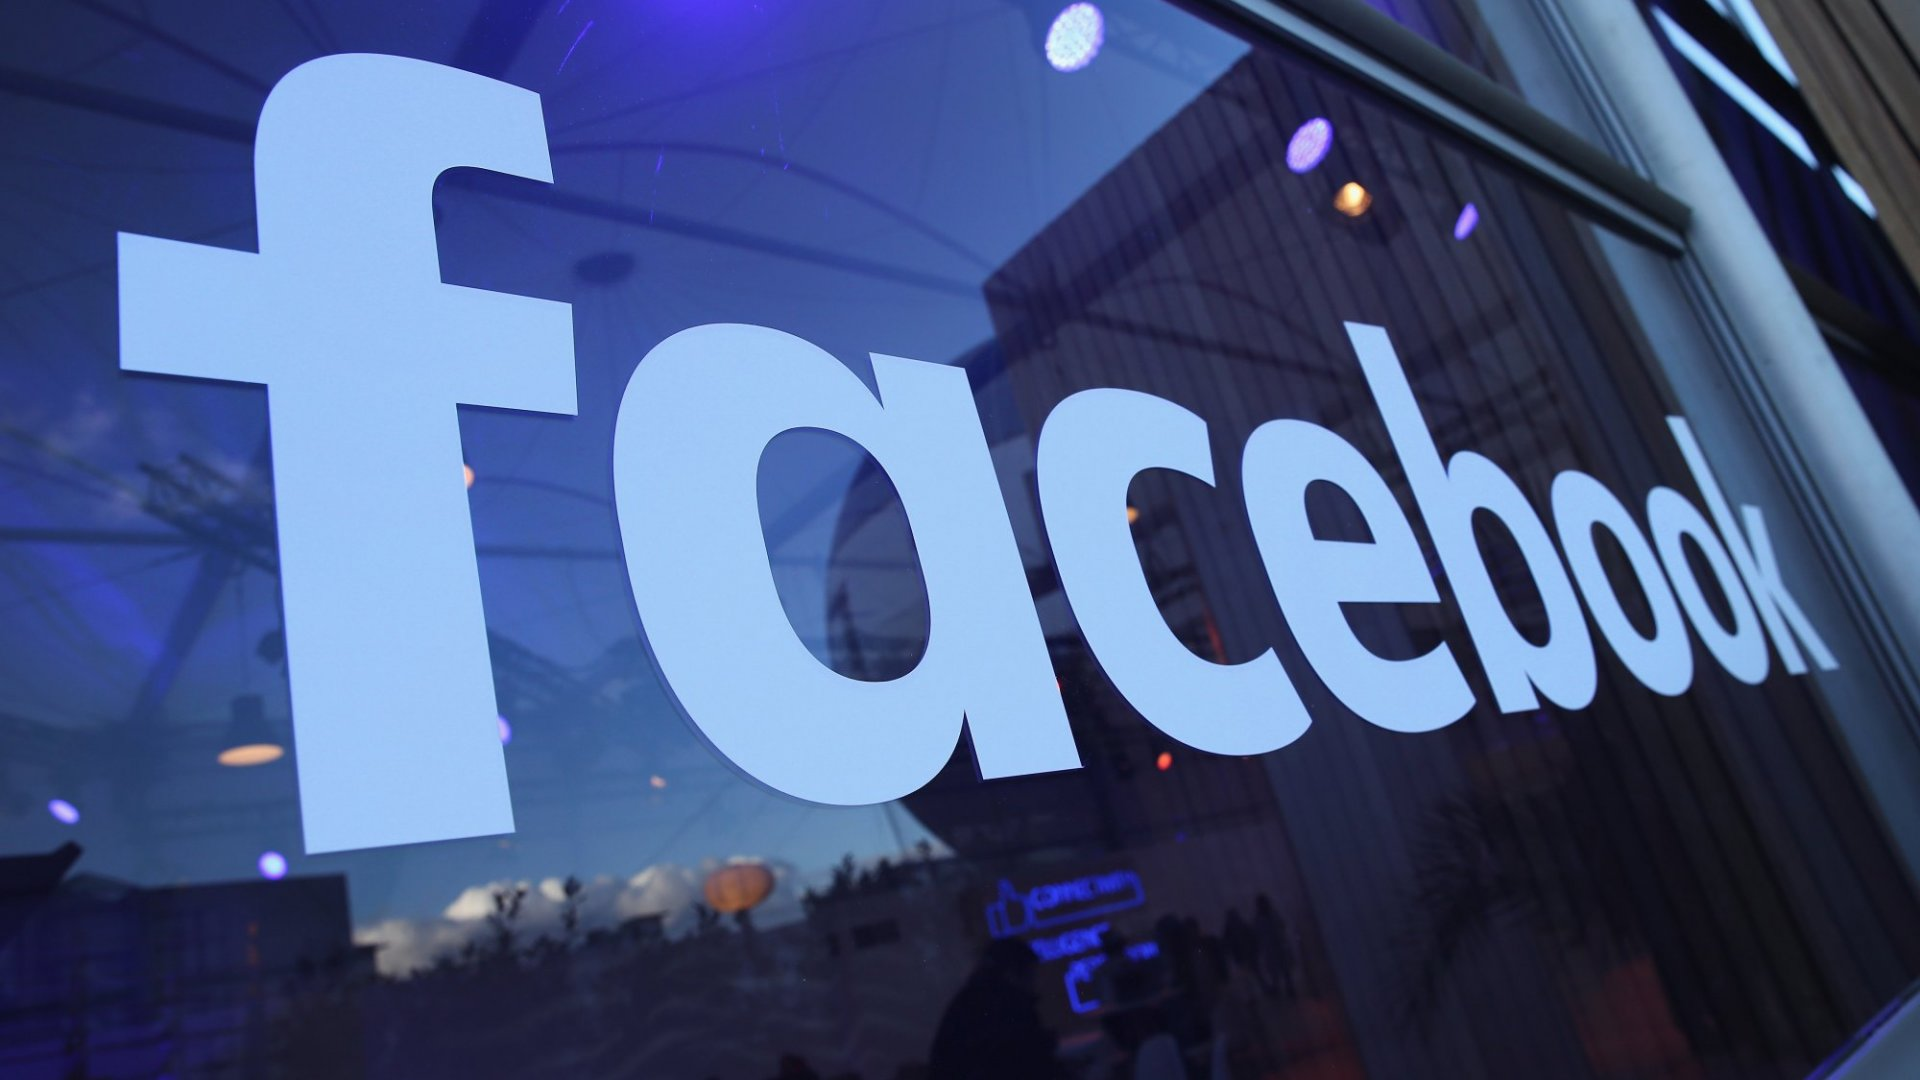 3 Takeaways From Facebook's Small Business Week Announcement